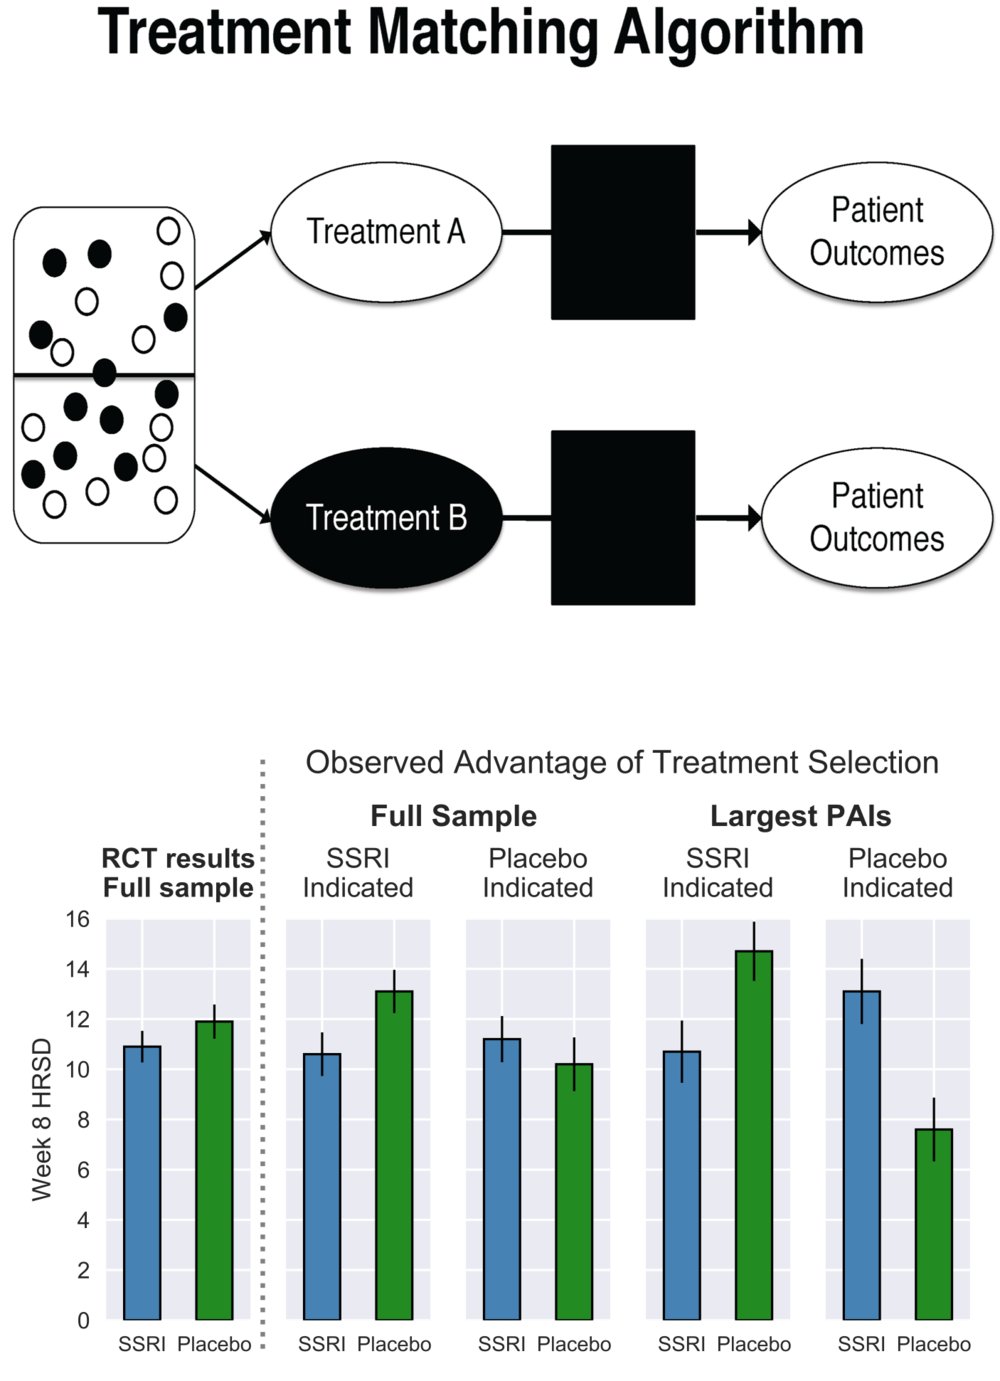 Leveraging Machine learning for PErsonalized PRediction of Treatment Response - Greater knowledge of variables predicting better or worse treatment response prior to the start of treatment may have important clinical implications regarding which interventions are best suited for whom, thus informing treatment selection. Our more recent research is aimed at developing actionable, algorithm-guided treatment recommendations to improve outcomes for depressed individuals by matching them to the optimal intervention. We are currently conducting this research within the context of randomized clinical trials and within real-world psychiatric clinics.